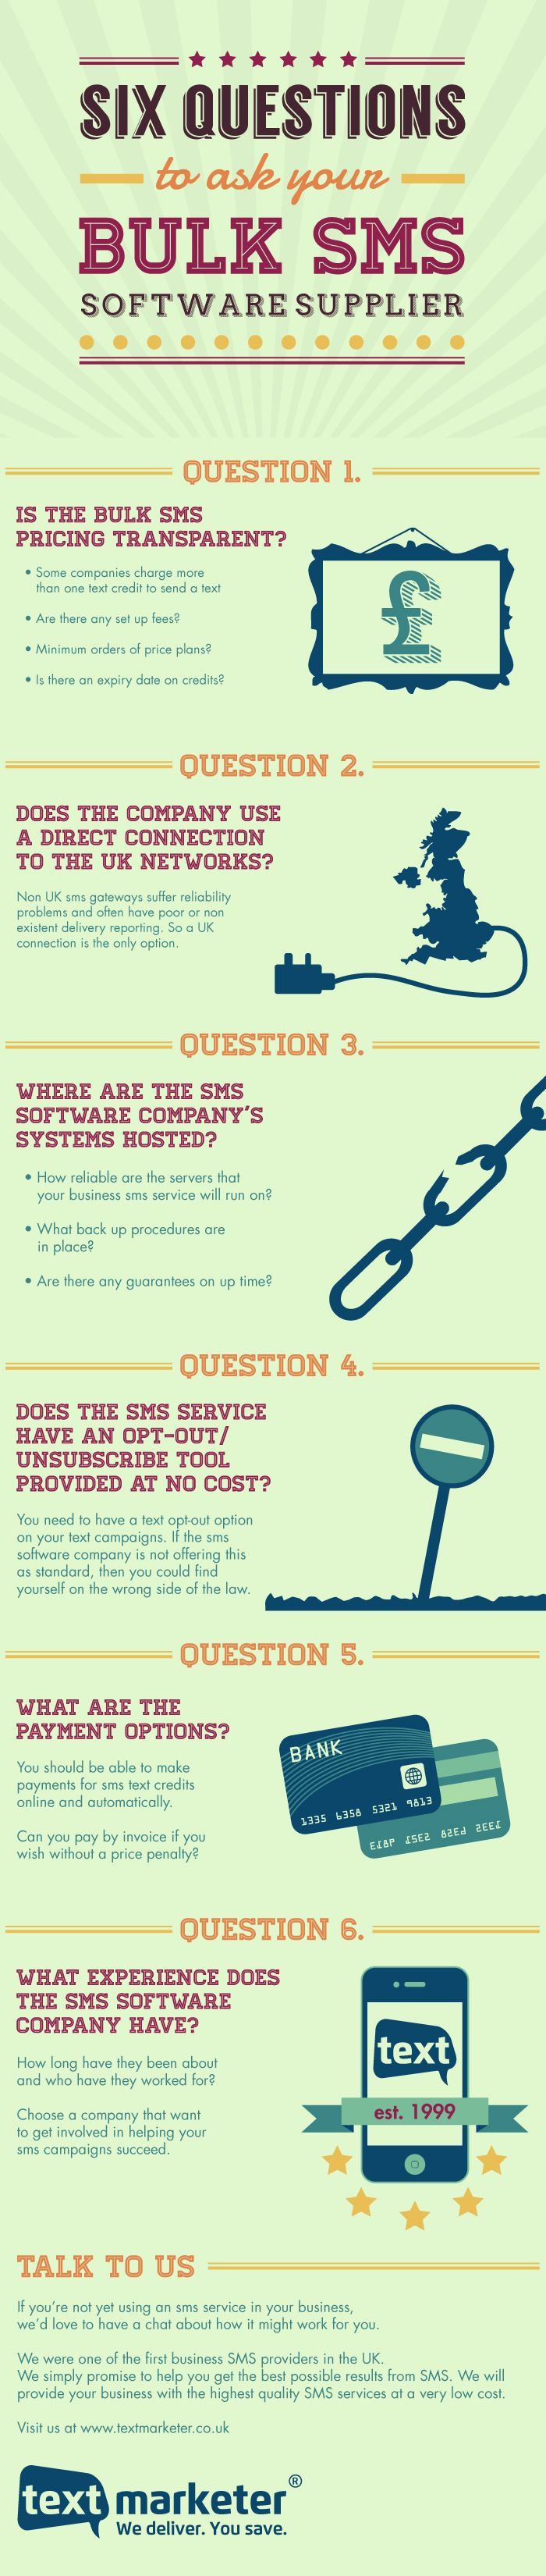 Six Questions To Ask Your Bulk SMS Software Supplier [INFOGRAPHIC] #SMS #software